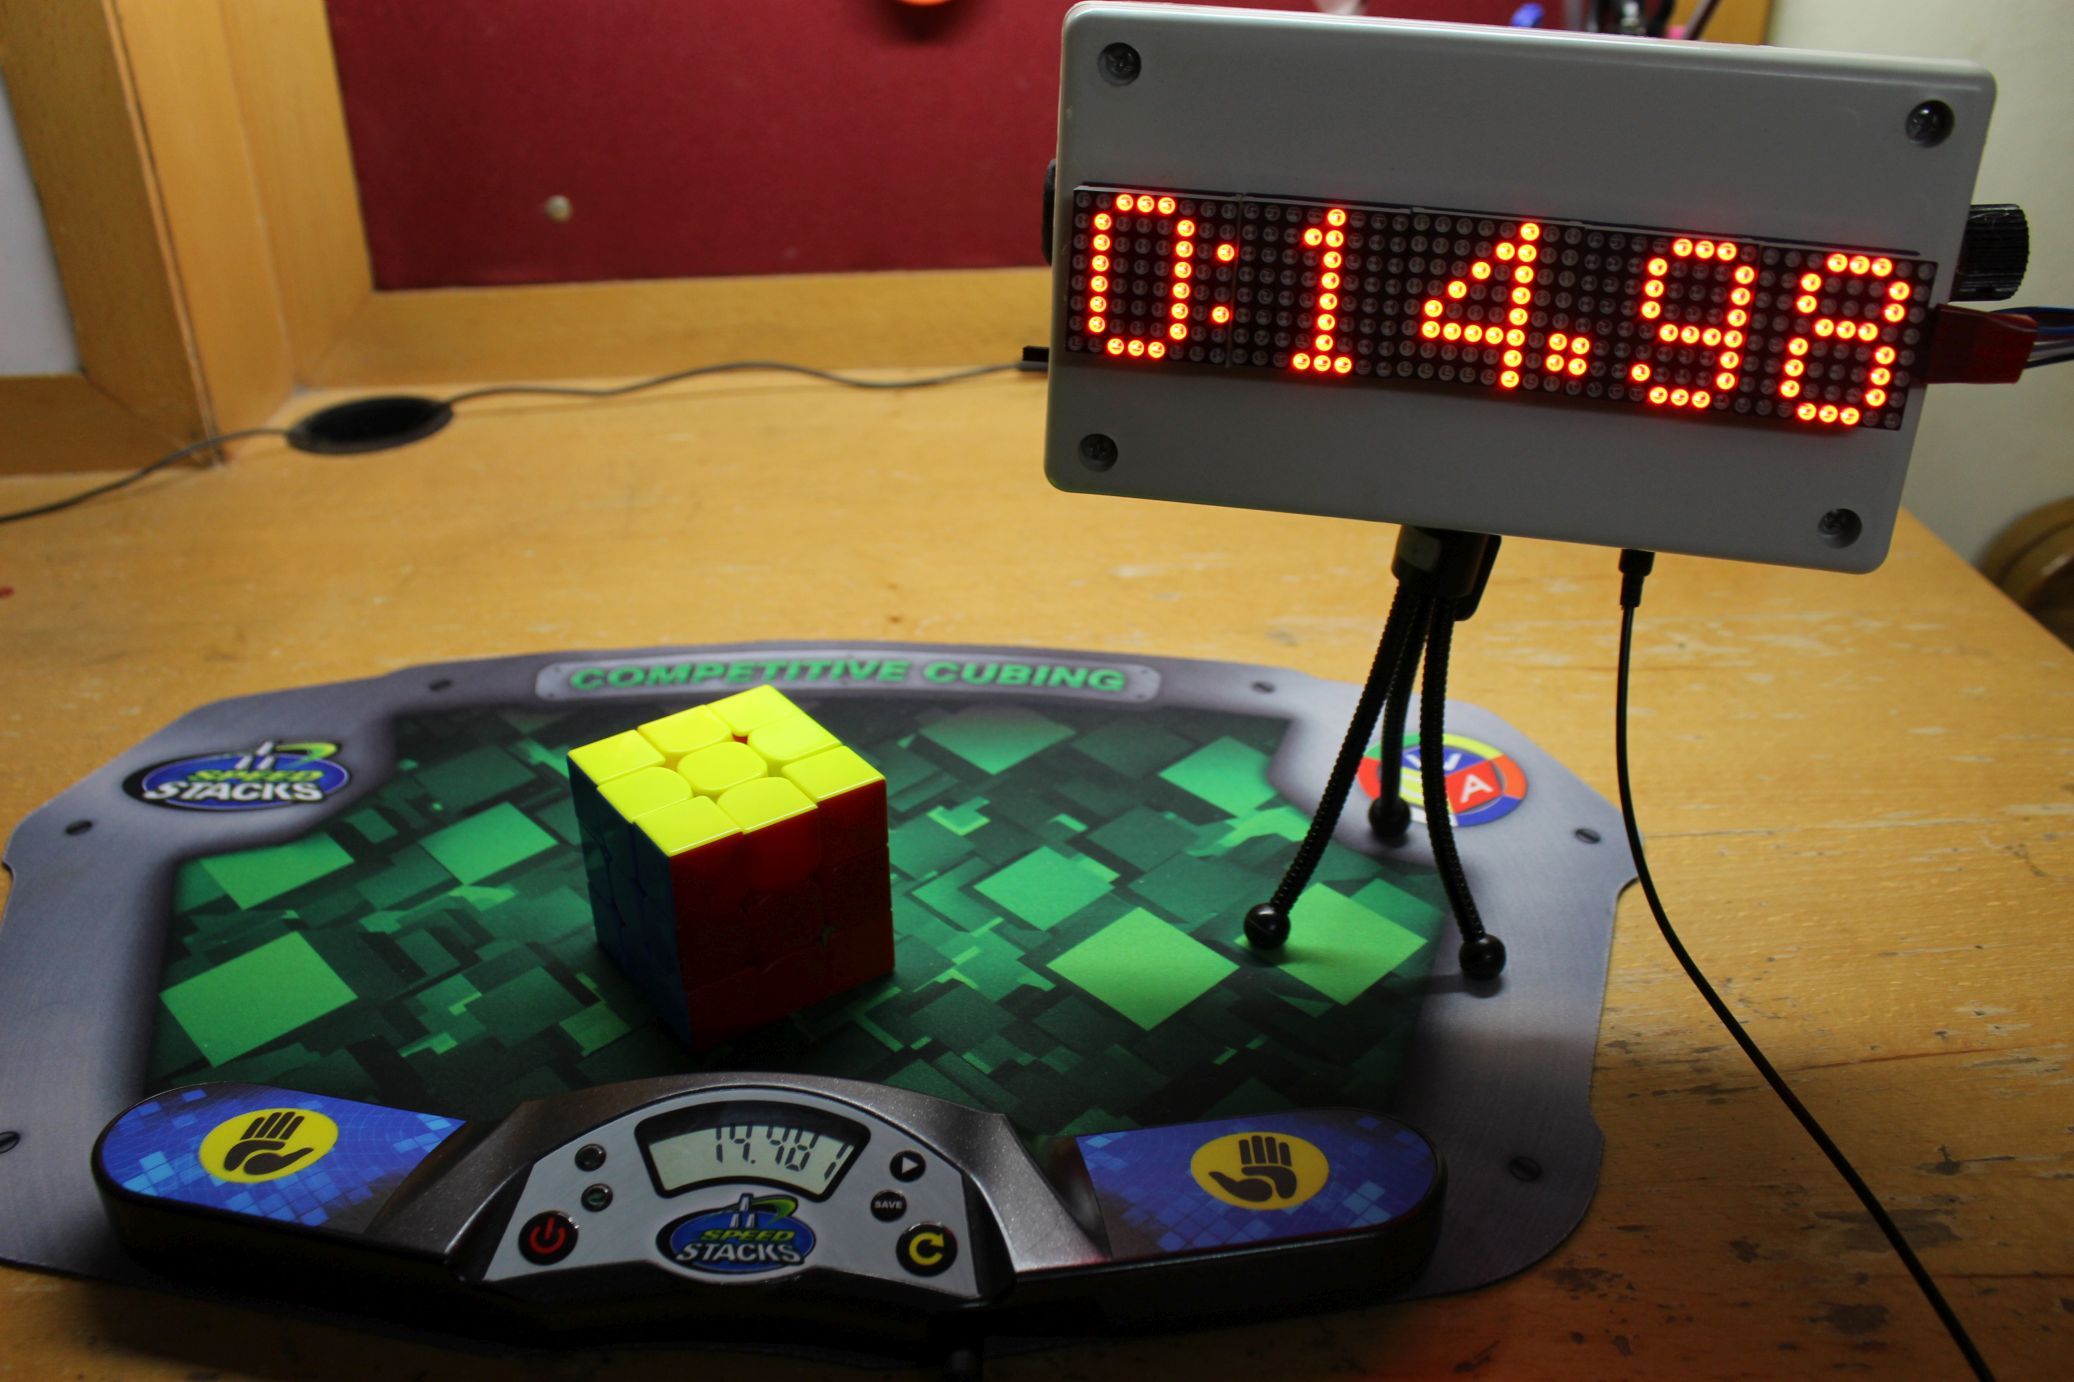 Ledmat Documentation Timer Based Projects Electronics Proojects Introduction The Goal Of This Project